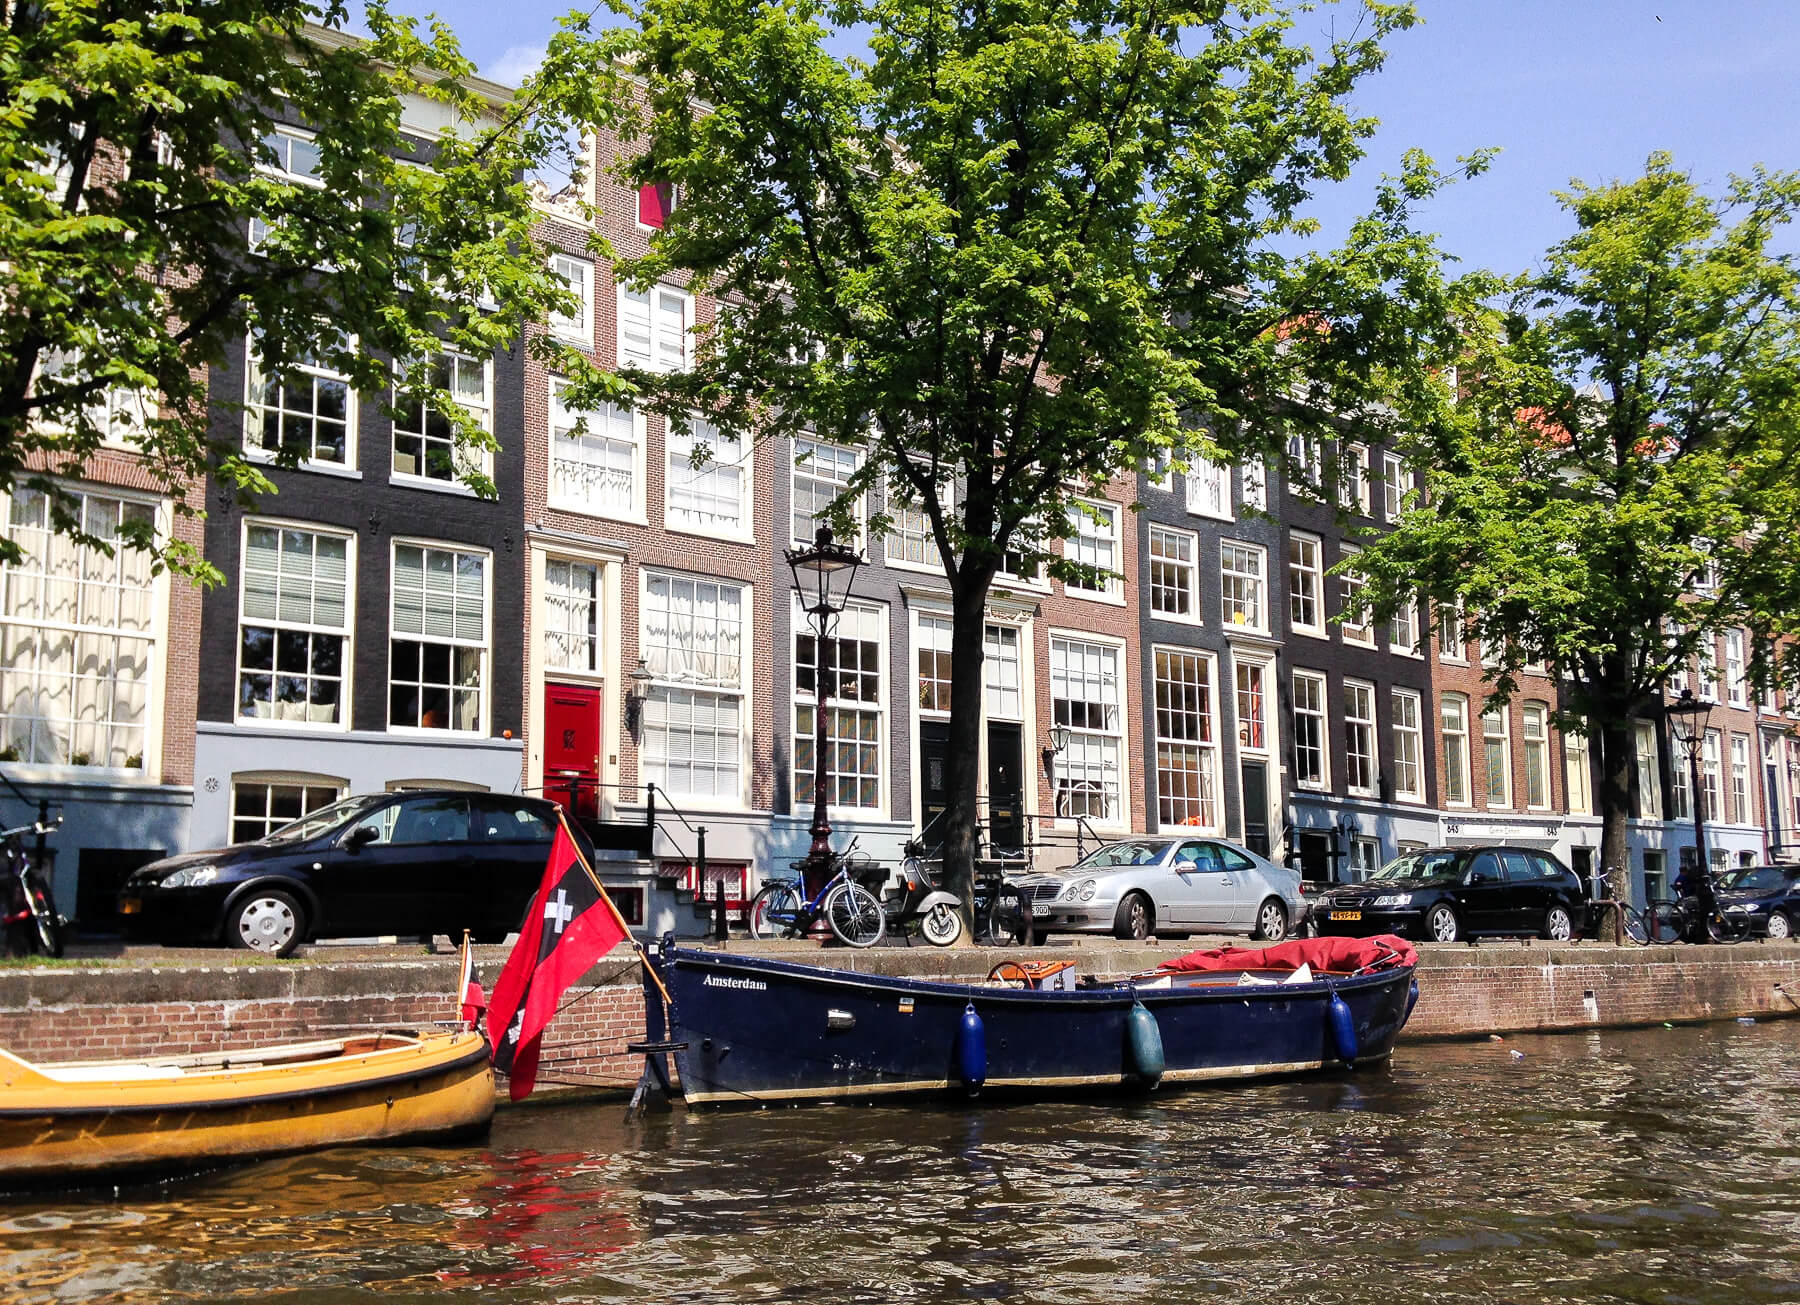 THE BEST THINGS TO DO DURING SUMMER IN AMSTERDAM